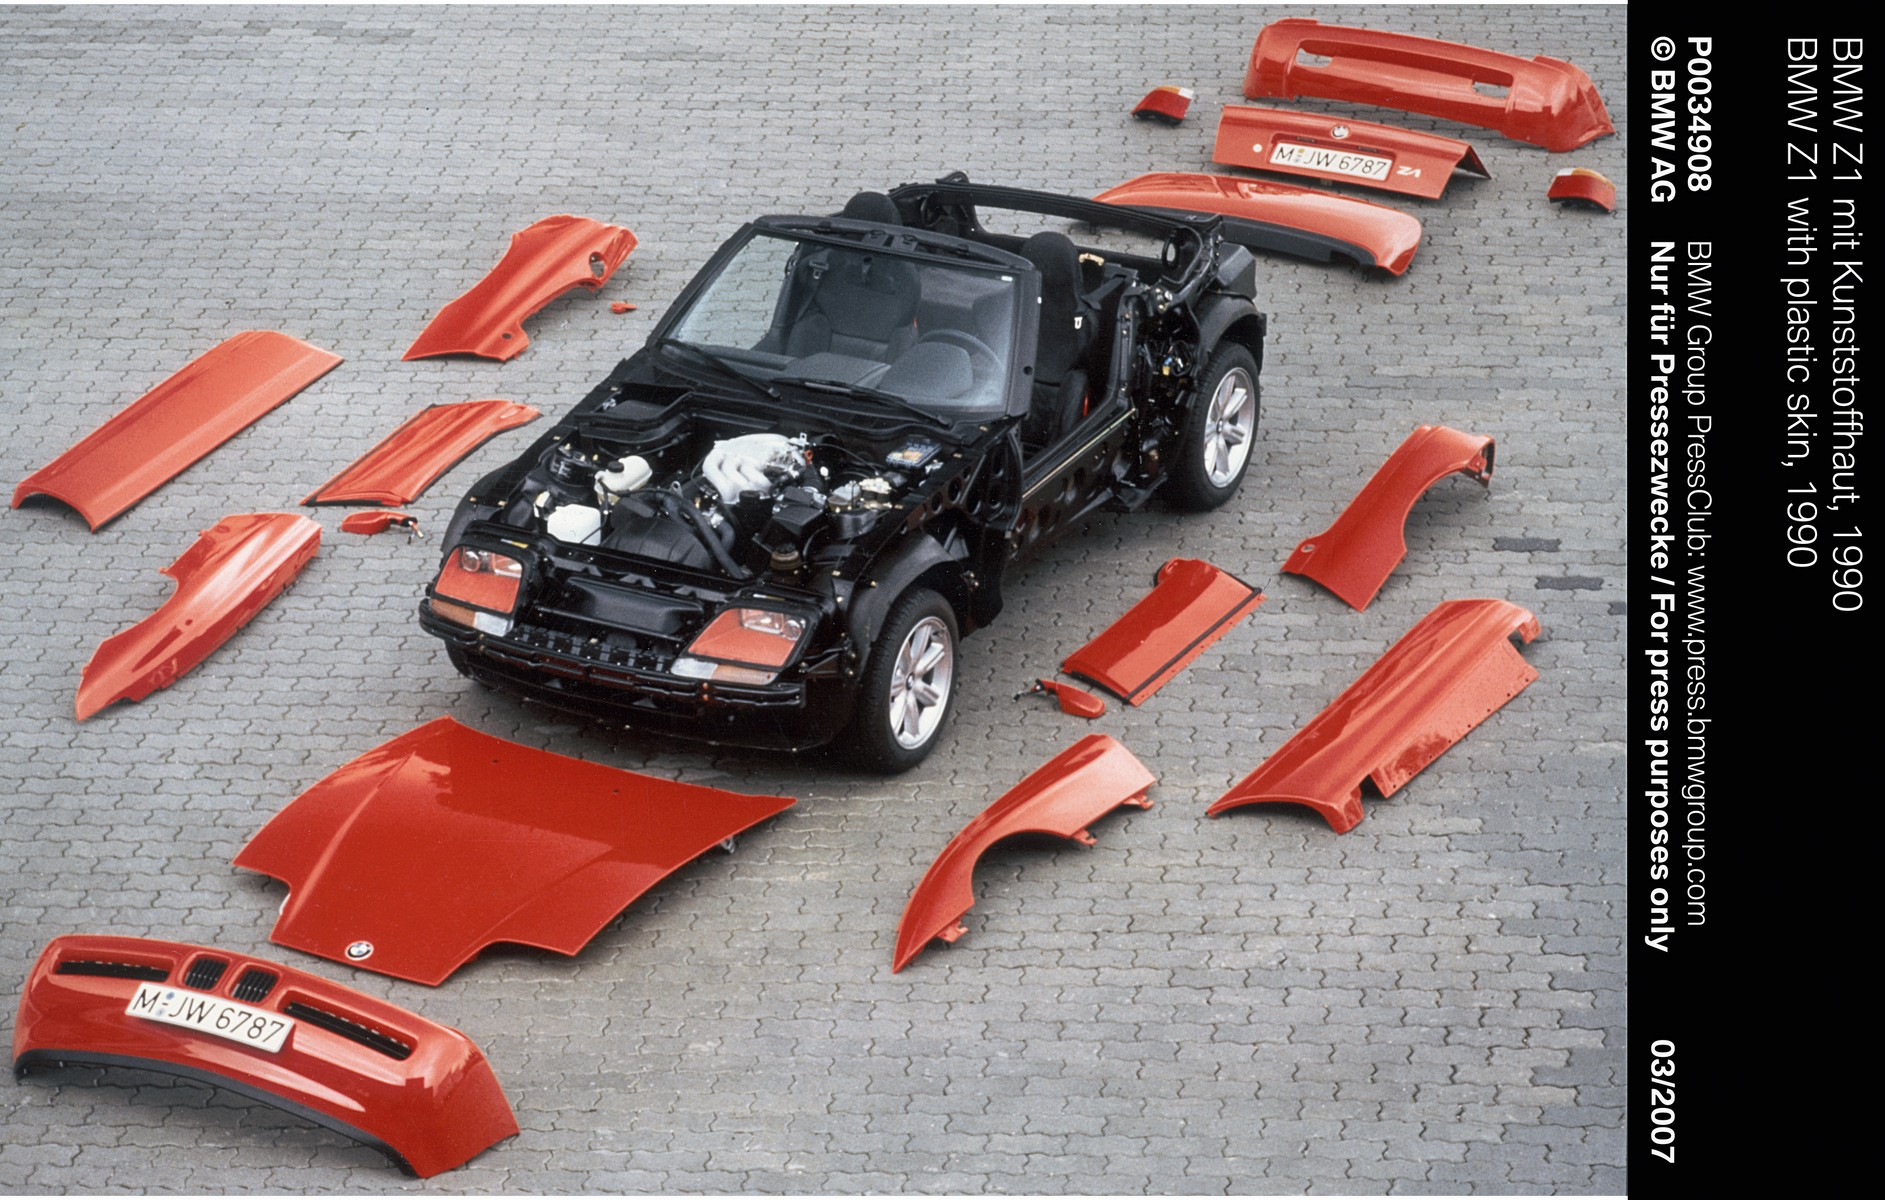 BMW Z1: The story behind the lightweight and durable body panels